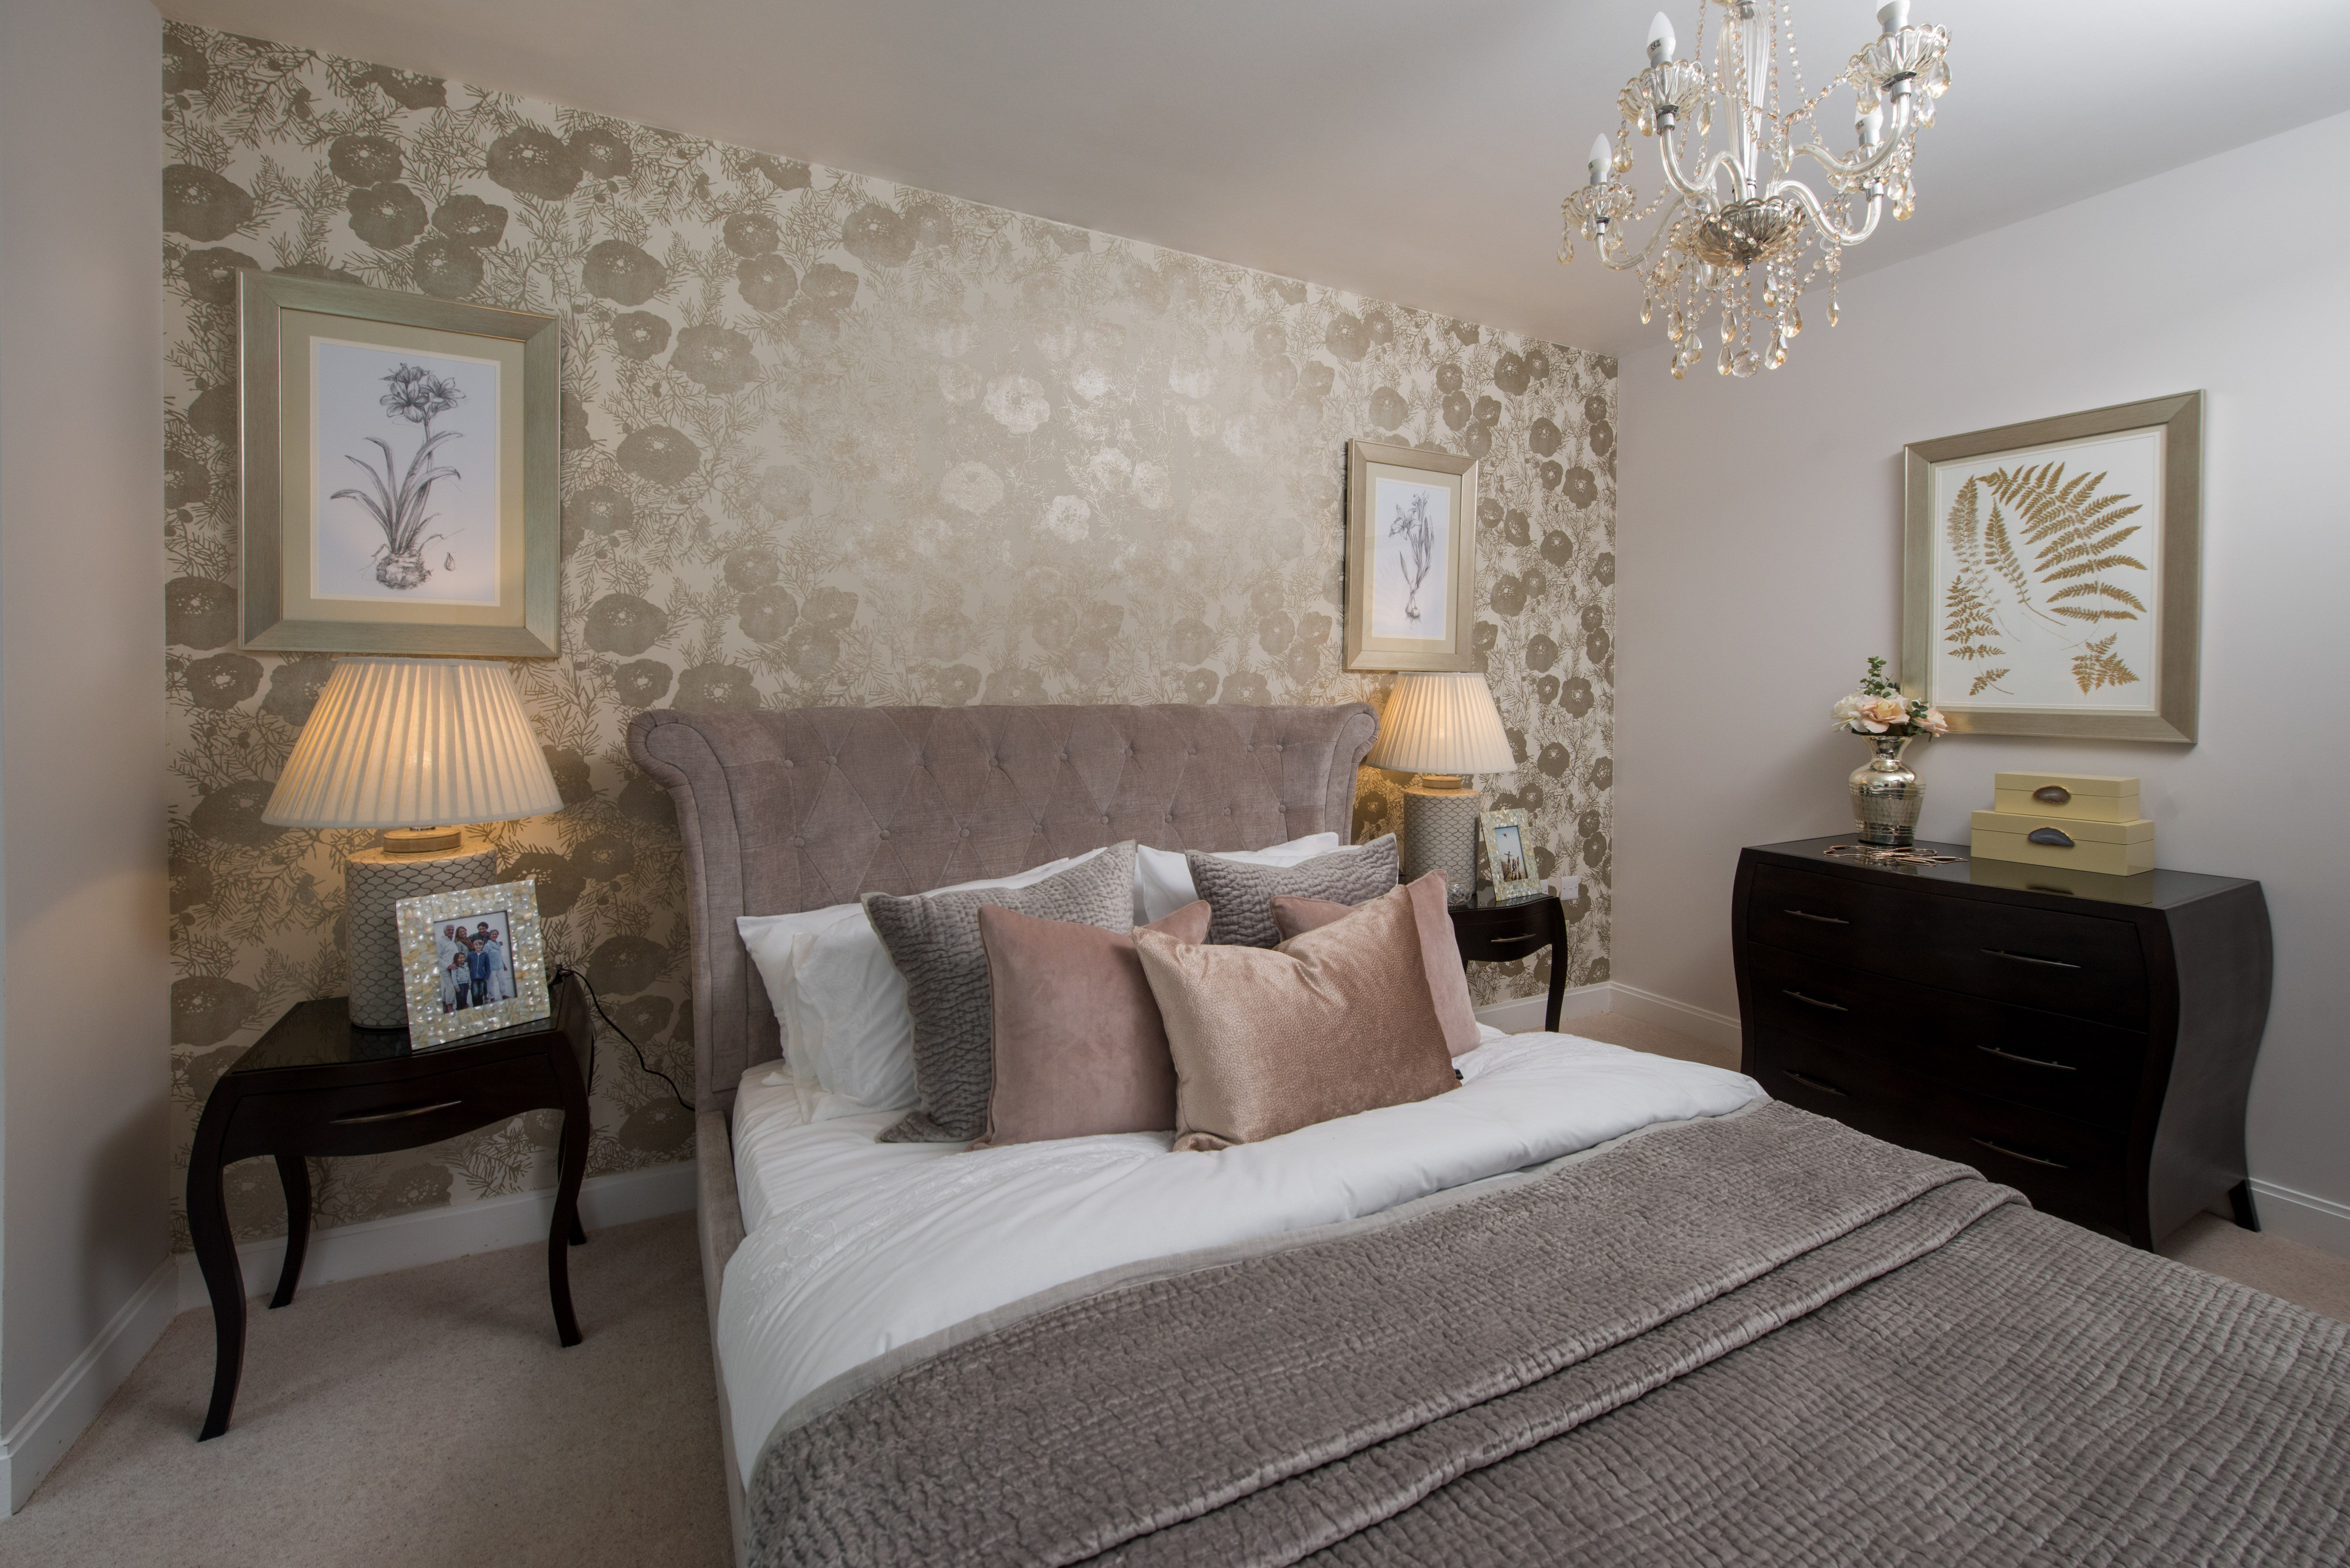 Pin by McCarthy & Stone on Interiors Luxurious bedrooms